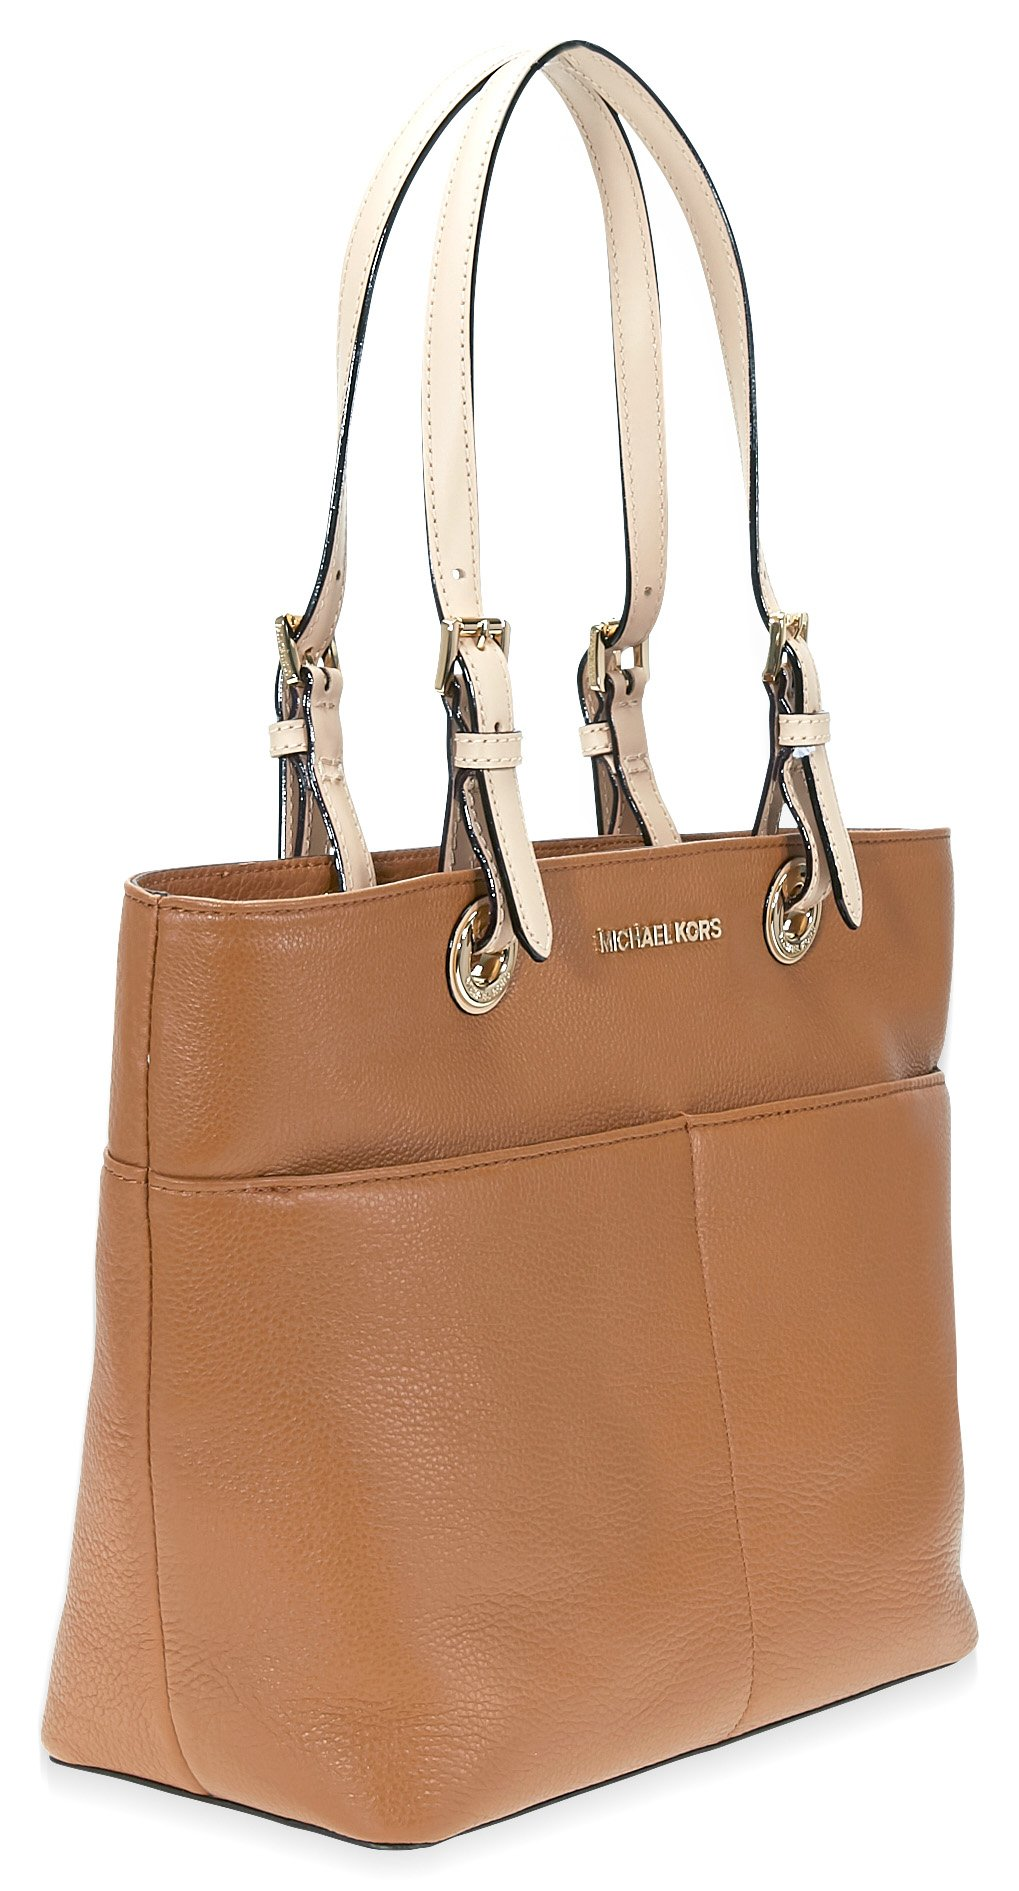 Michael Kors Bedford Leather Tote - Acorn by Michael Kors (Image #2)